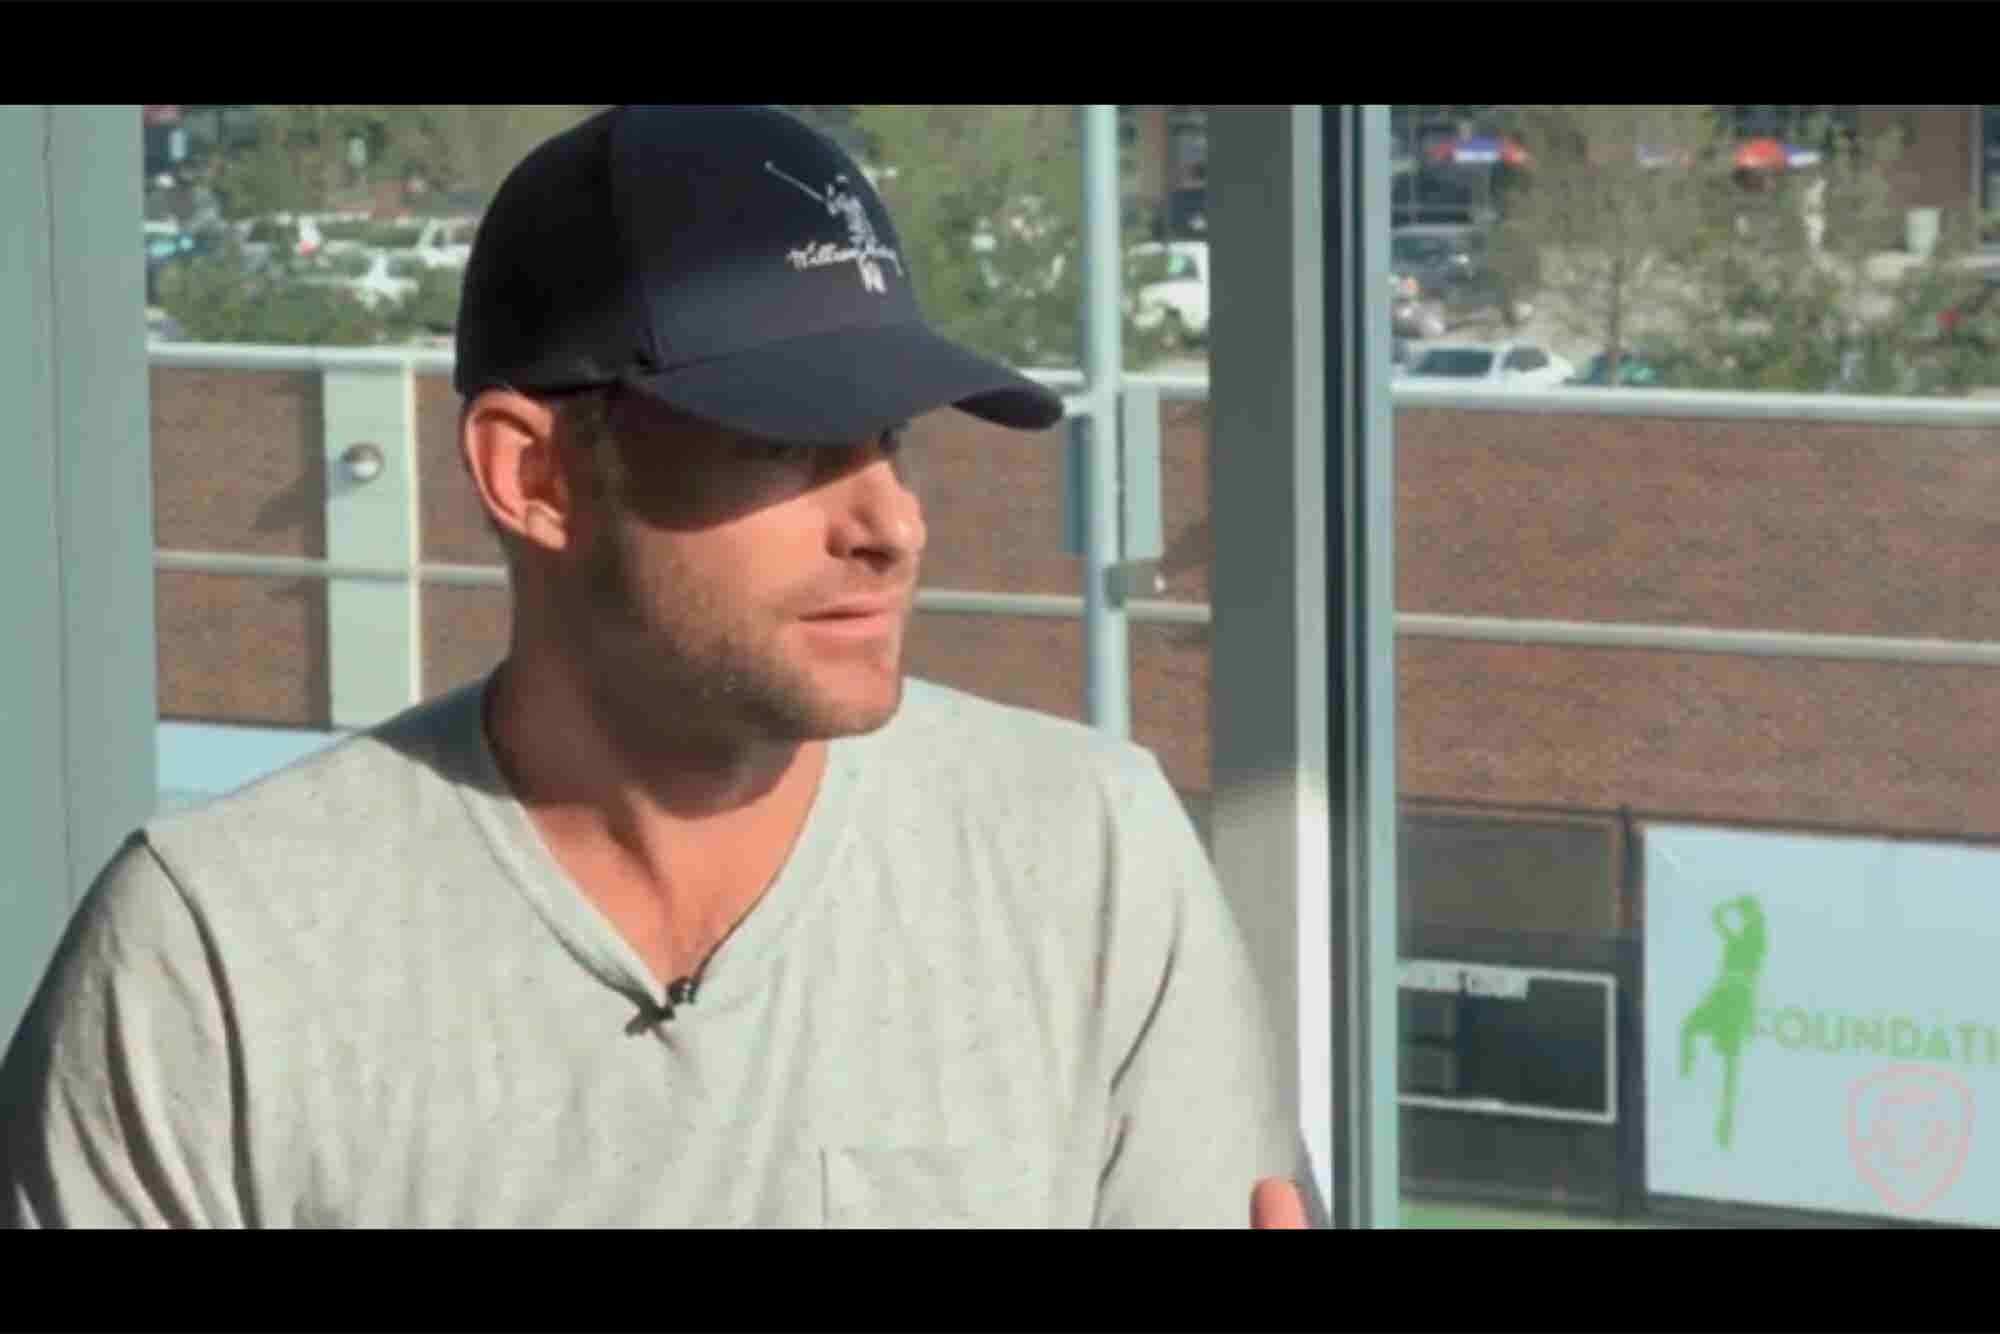 Tennis Great Andy Roddick Explains Why You're Never the Most Important Person in the Room